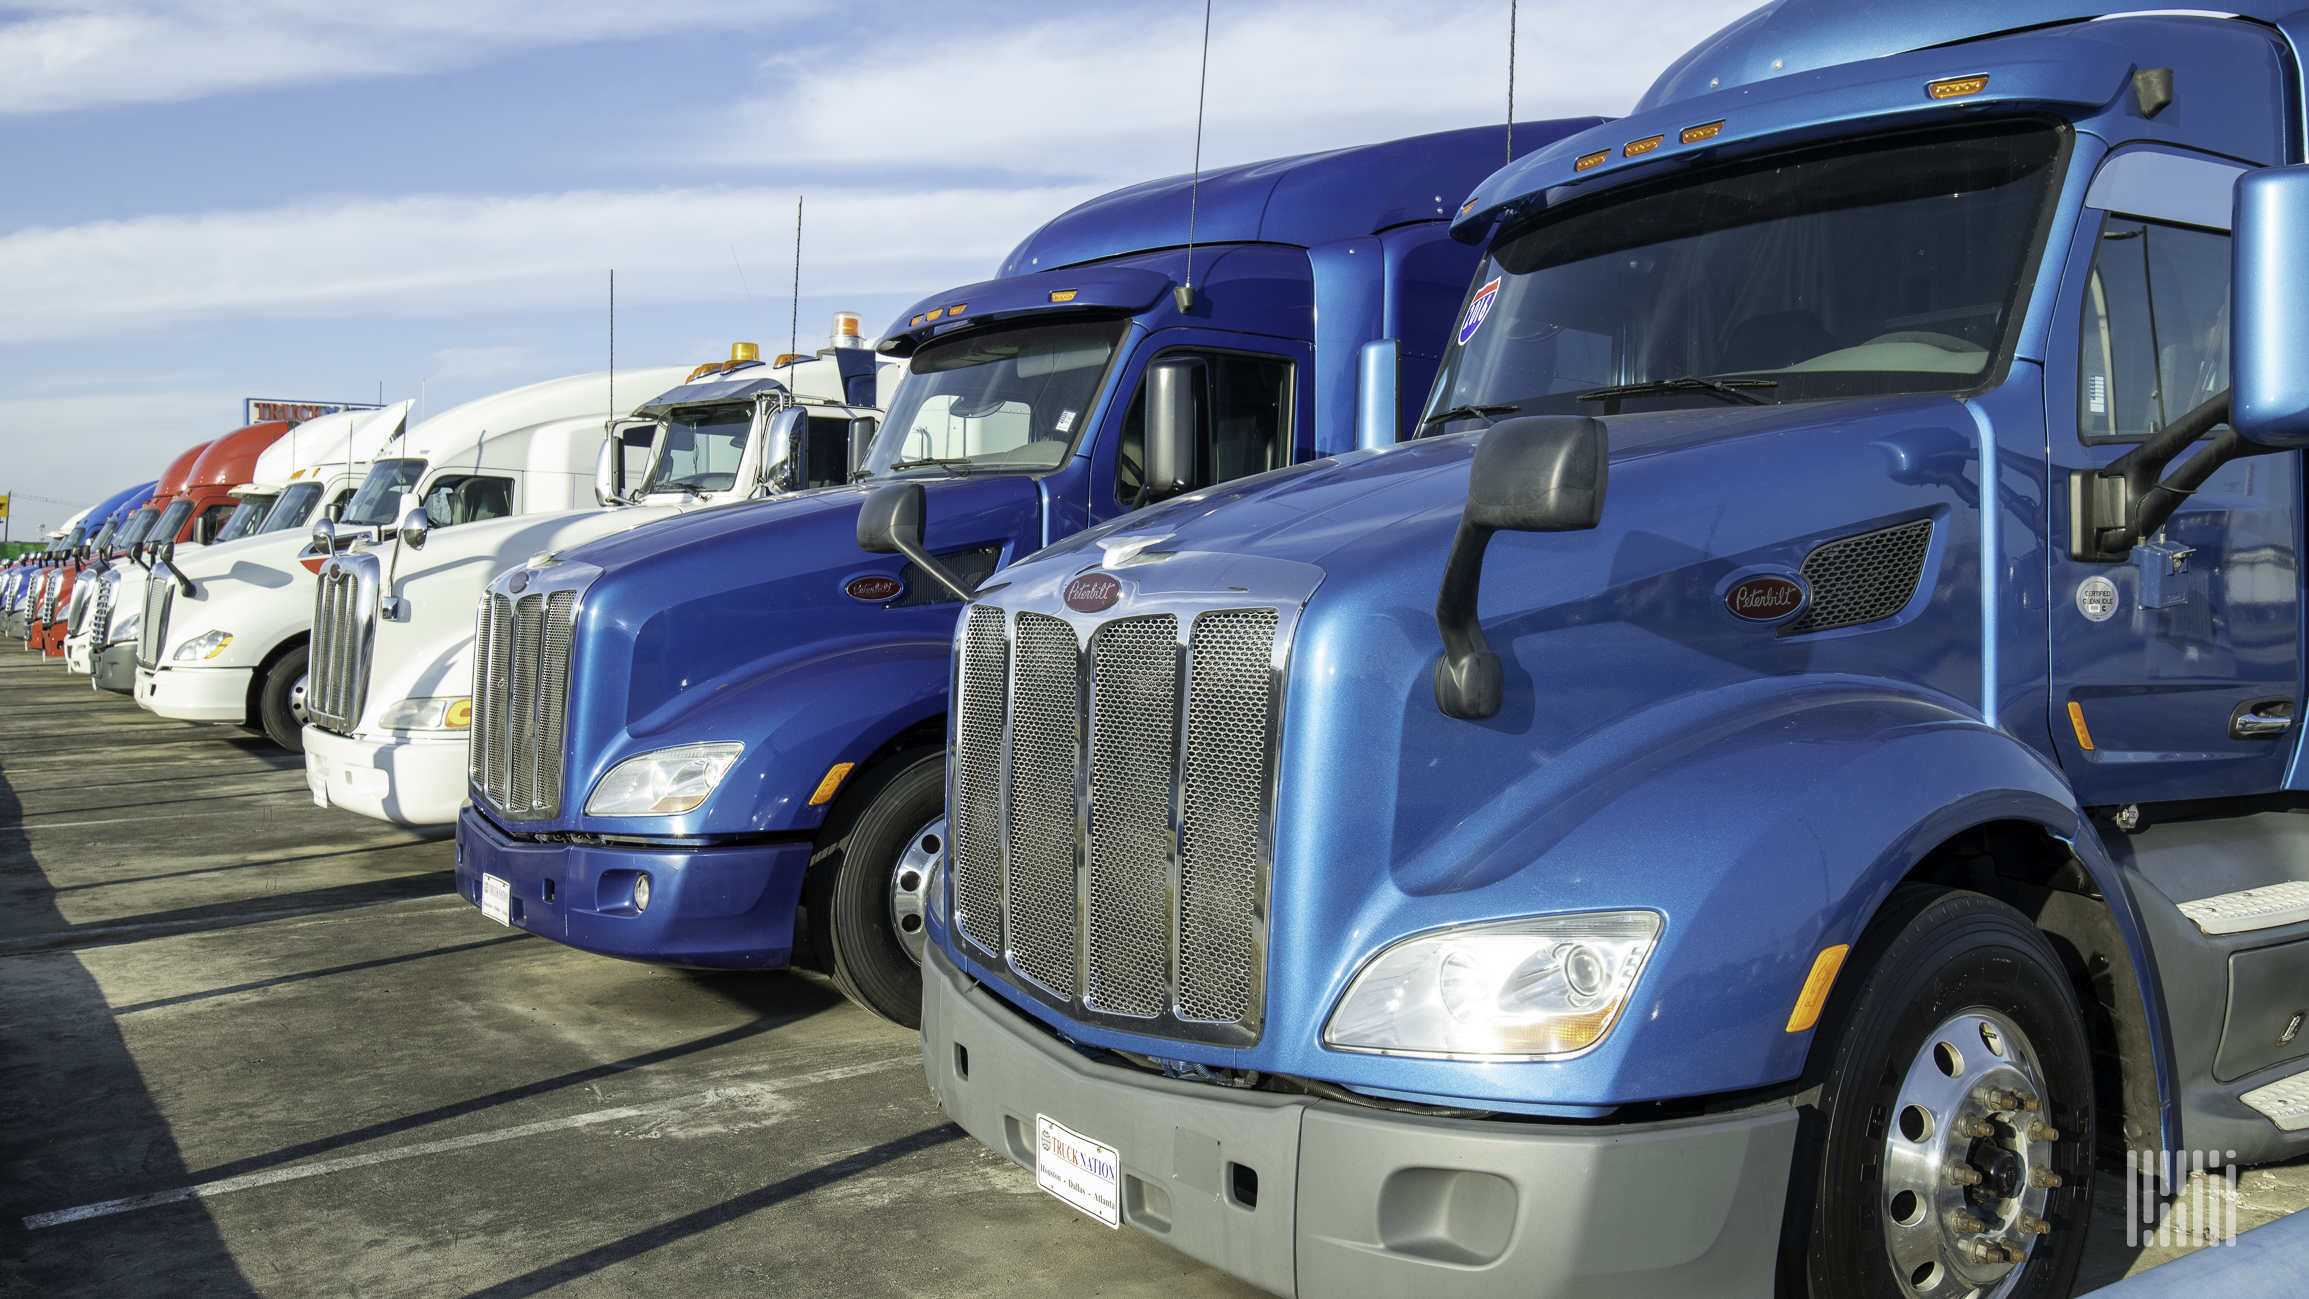 Used equipment prices determine gains on sale